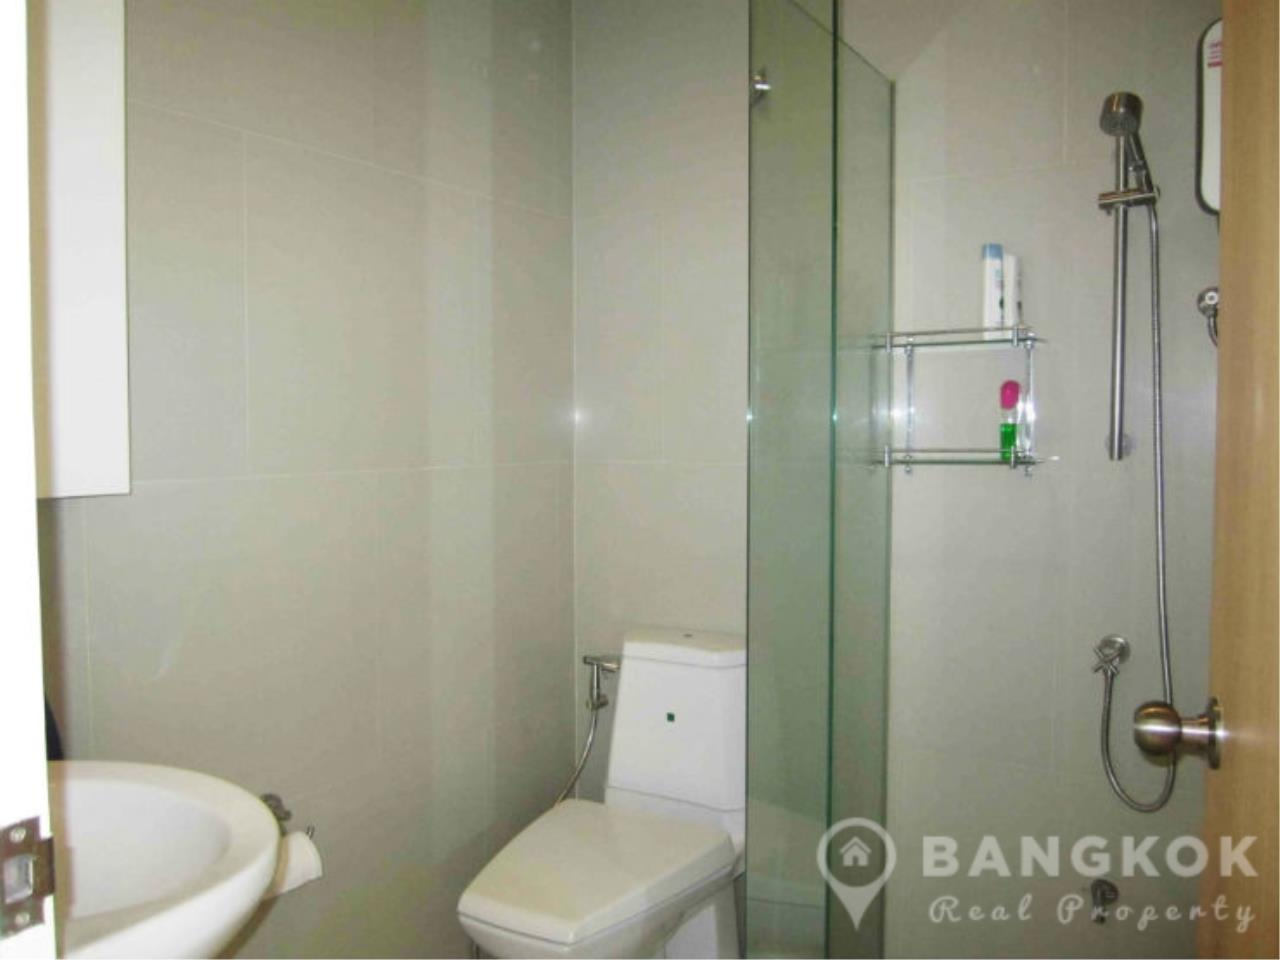 Bangkok Real Property Agency's Issara Ladprao | Stylish High Floor Studio with Stunning Views 5